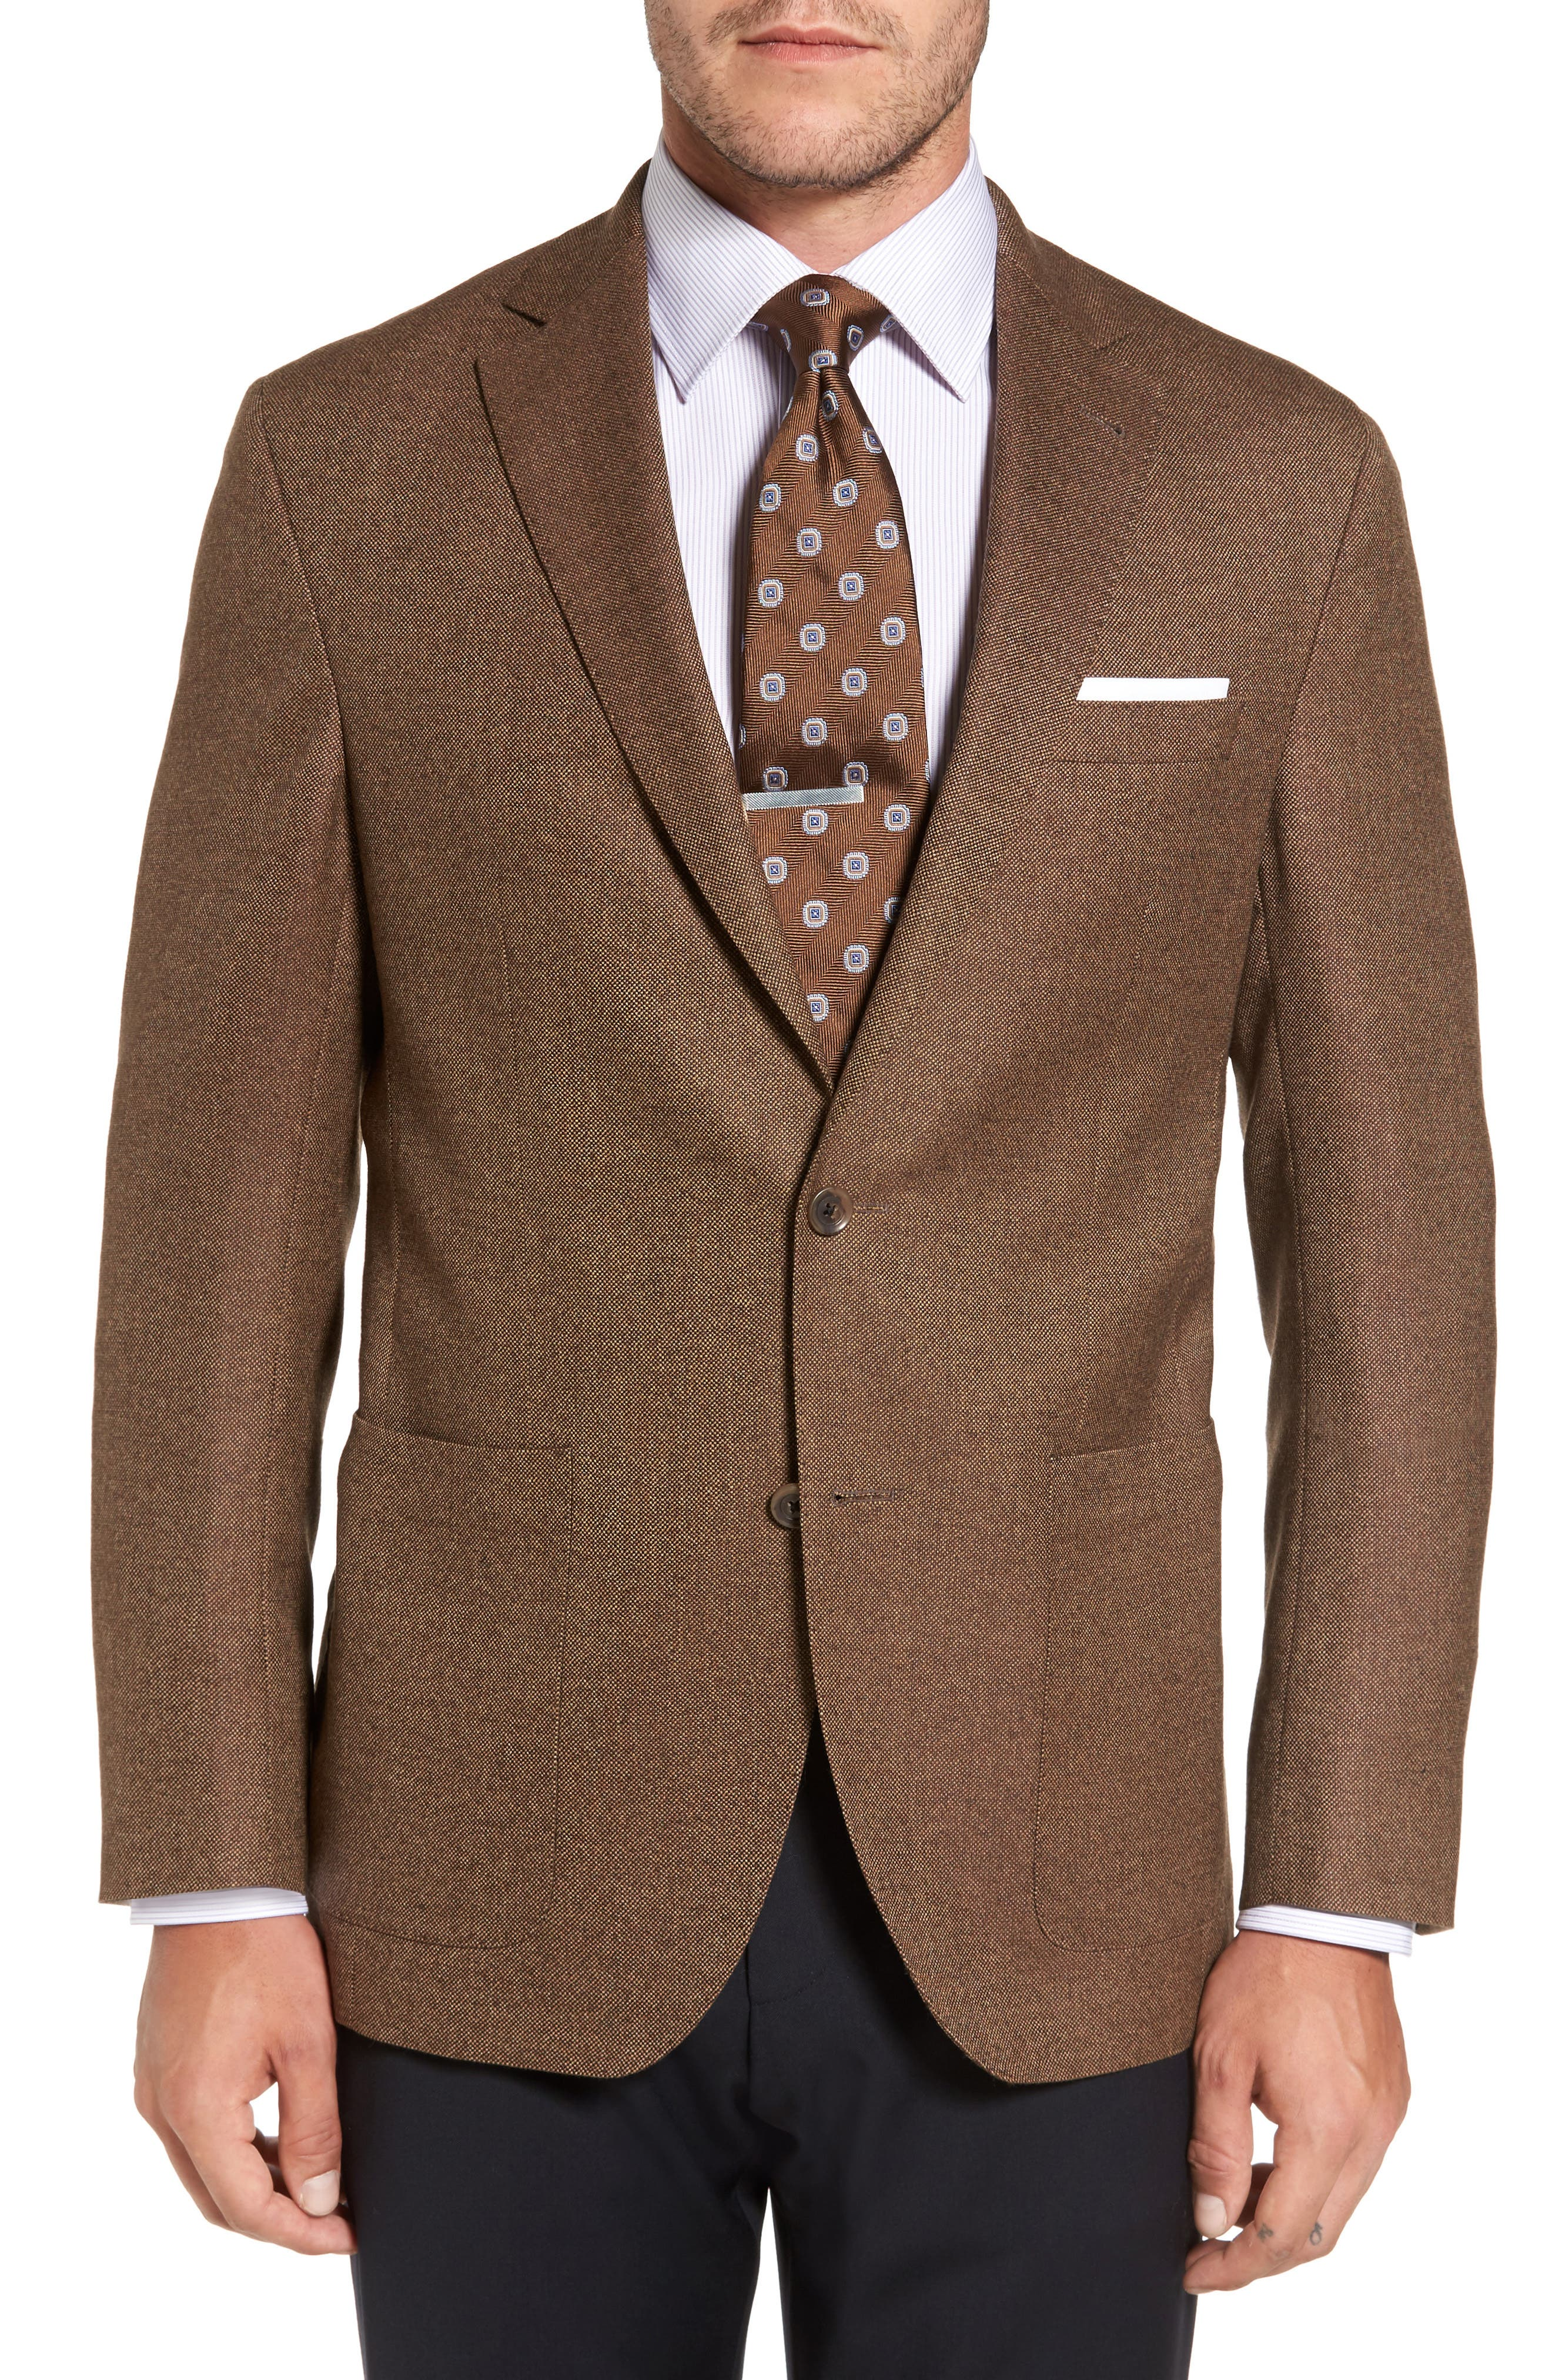 Aiden Classic Fit Wool Blazer,                         Main,                         color, 230